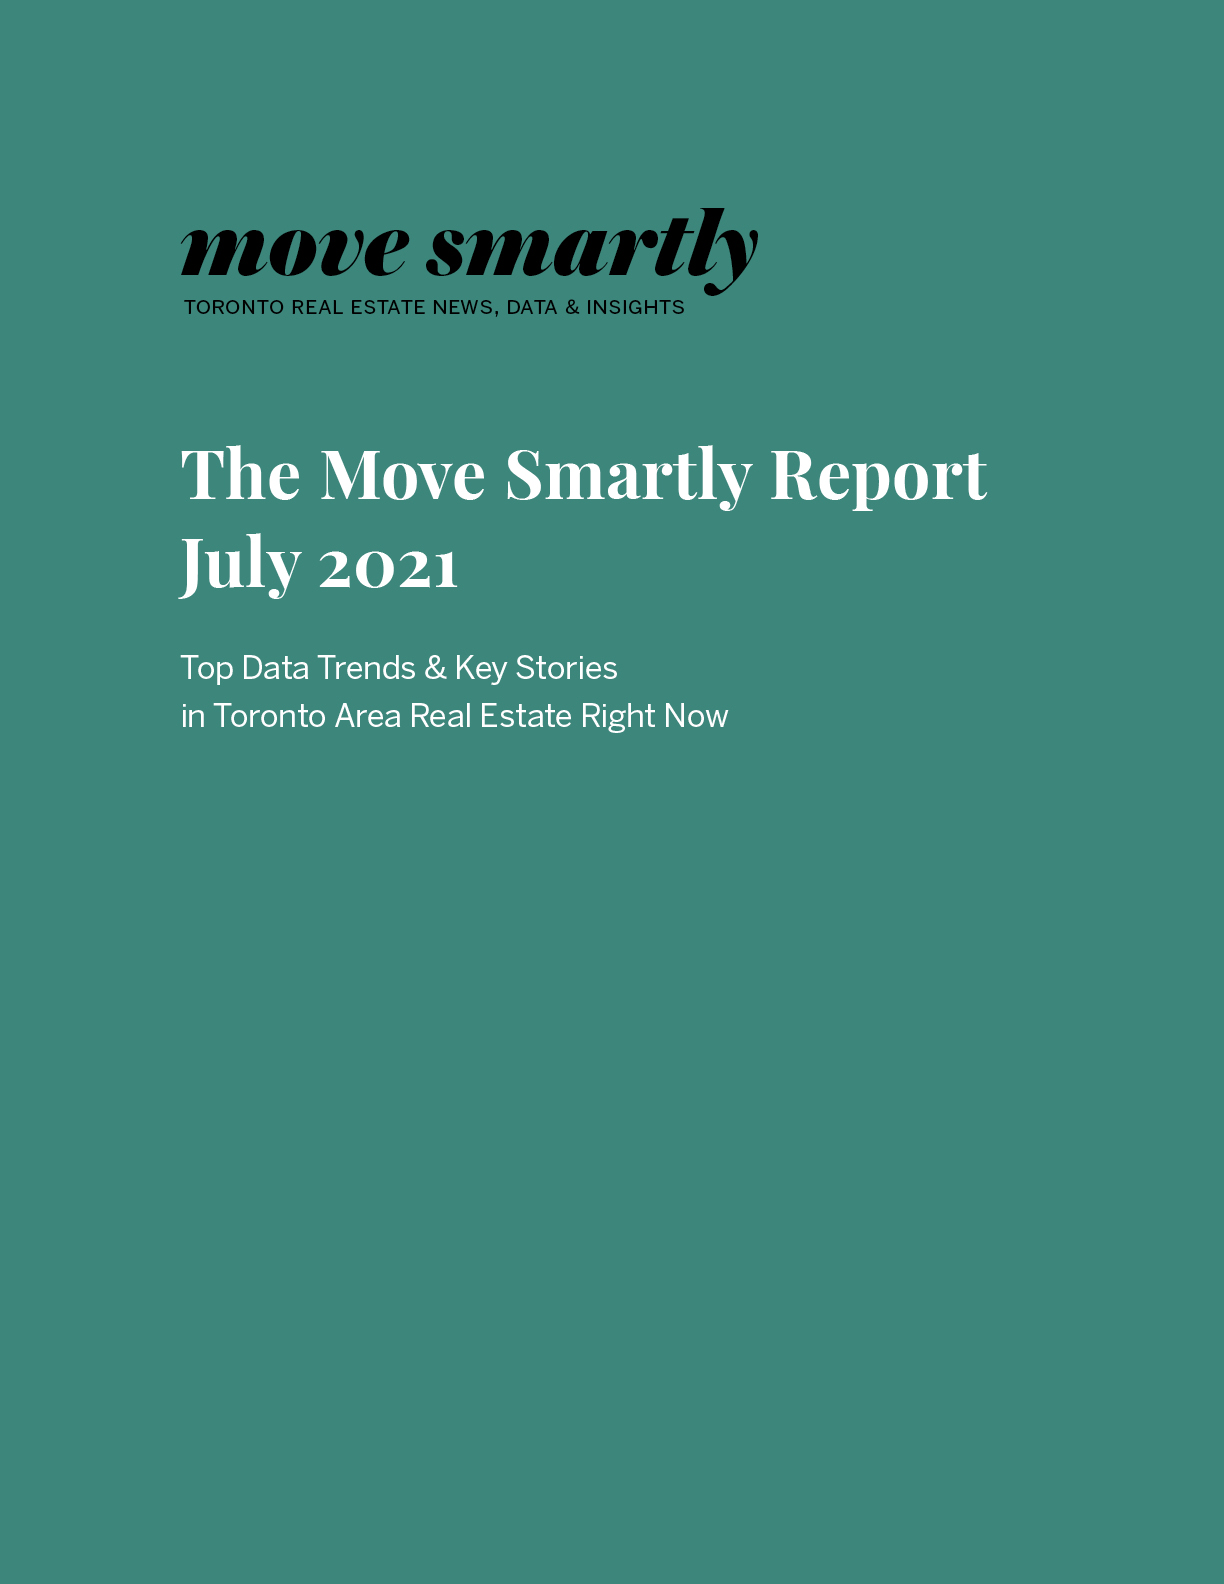 Move Smartly July 2021 Report Cover Simple